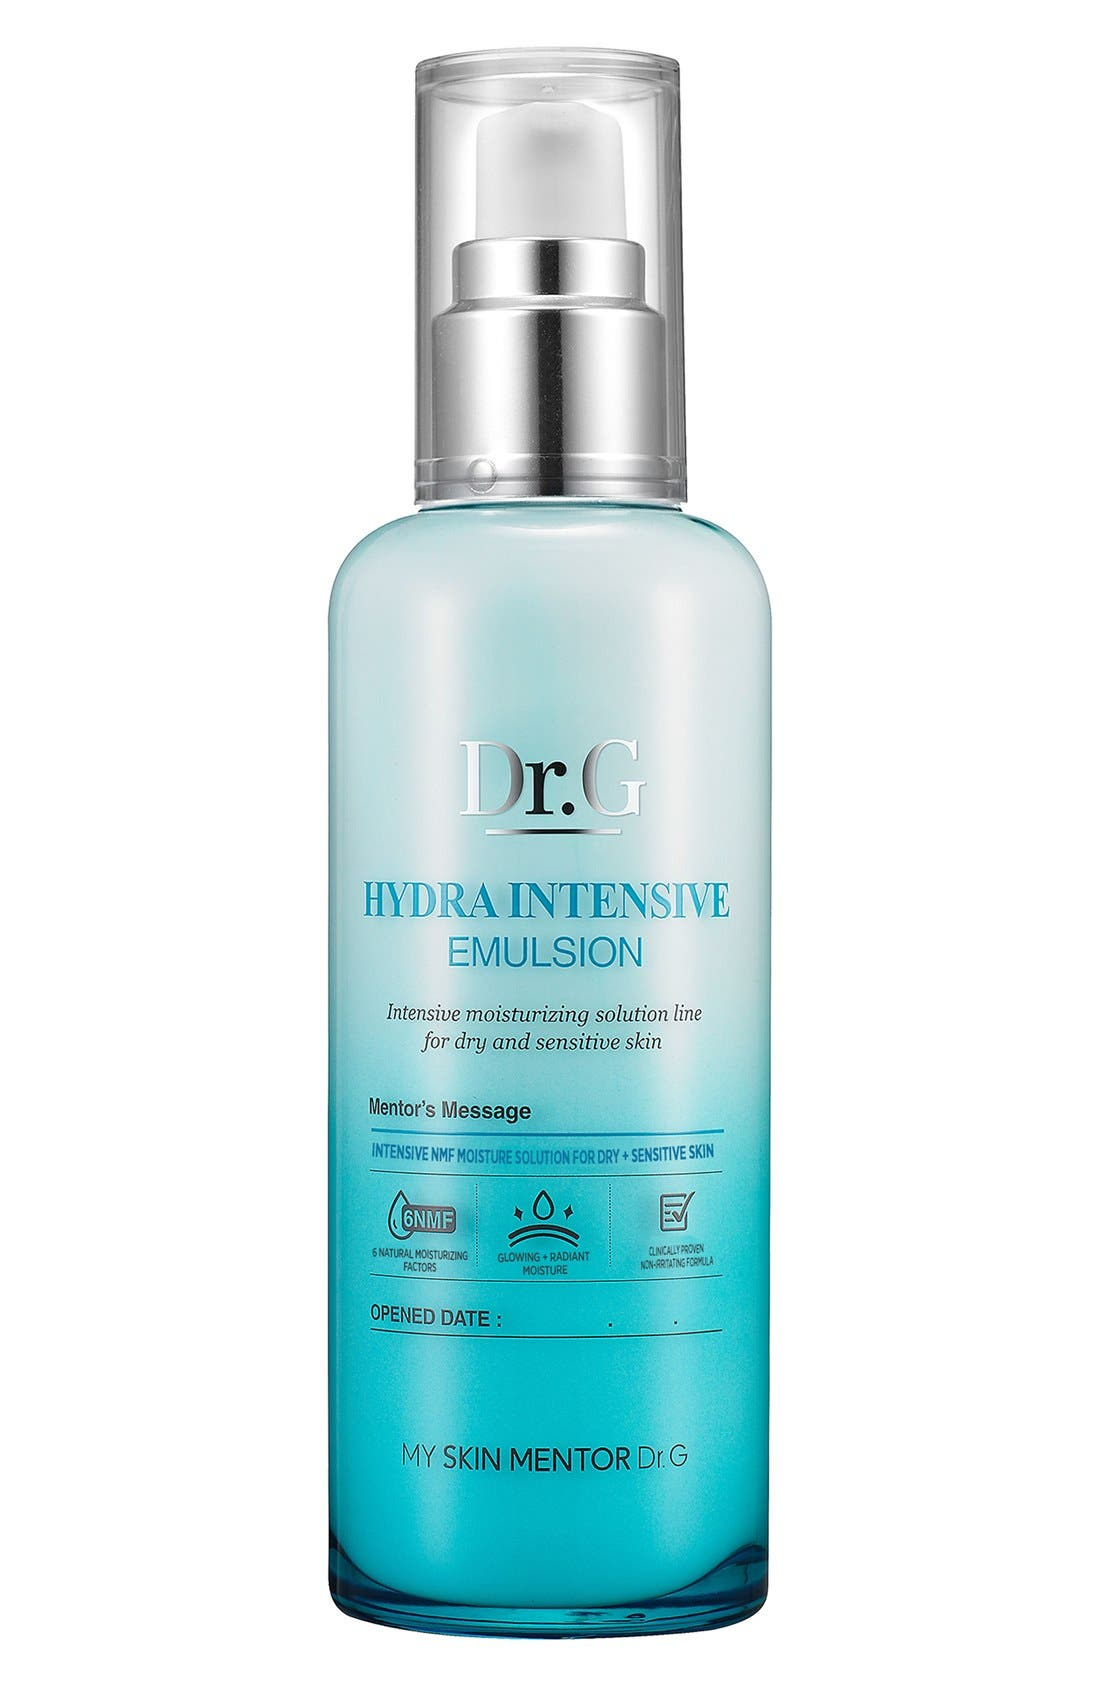 My Skin Mentor Dr. G Beauty 'Hydra Intensive' Emulsion